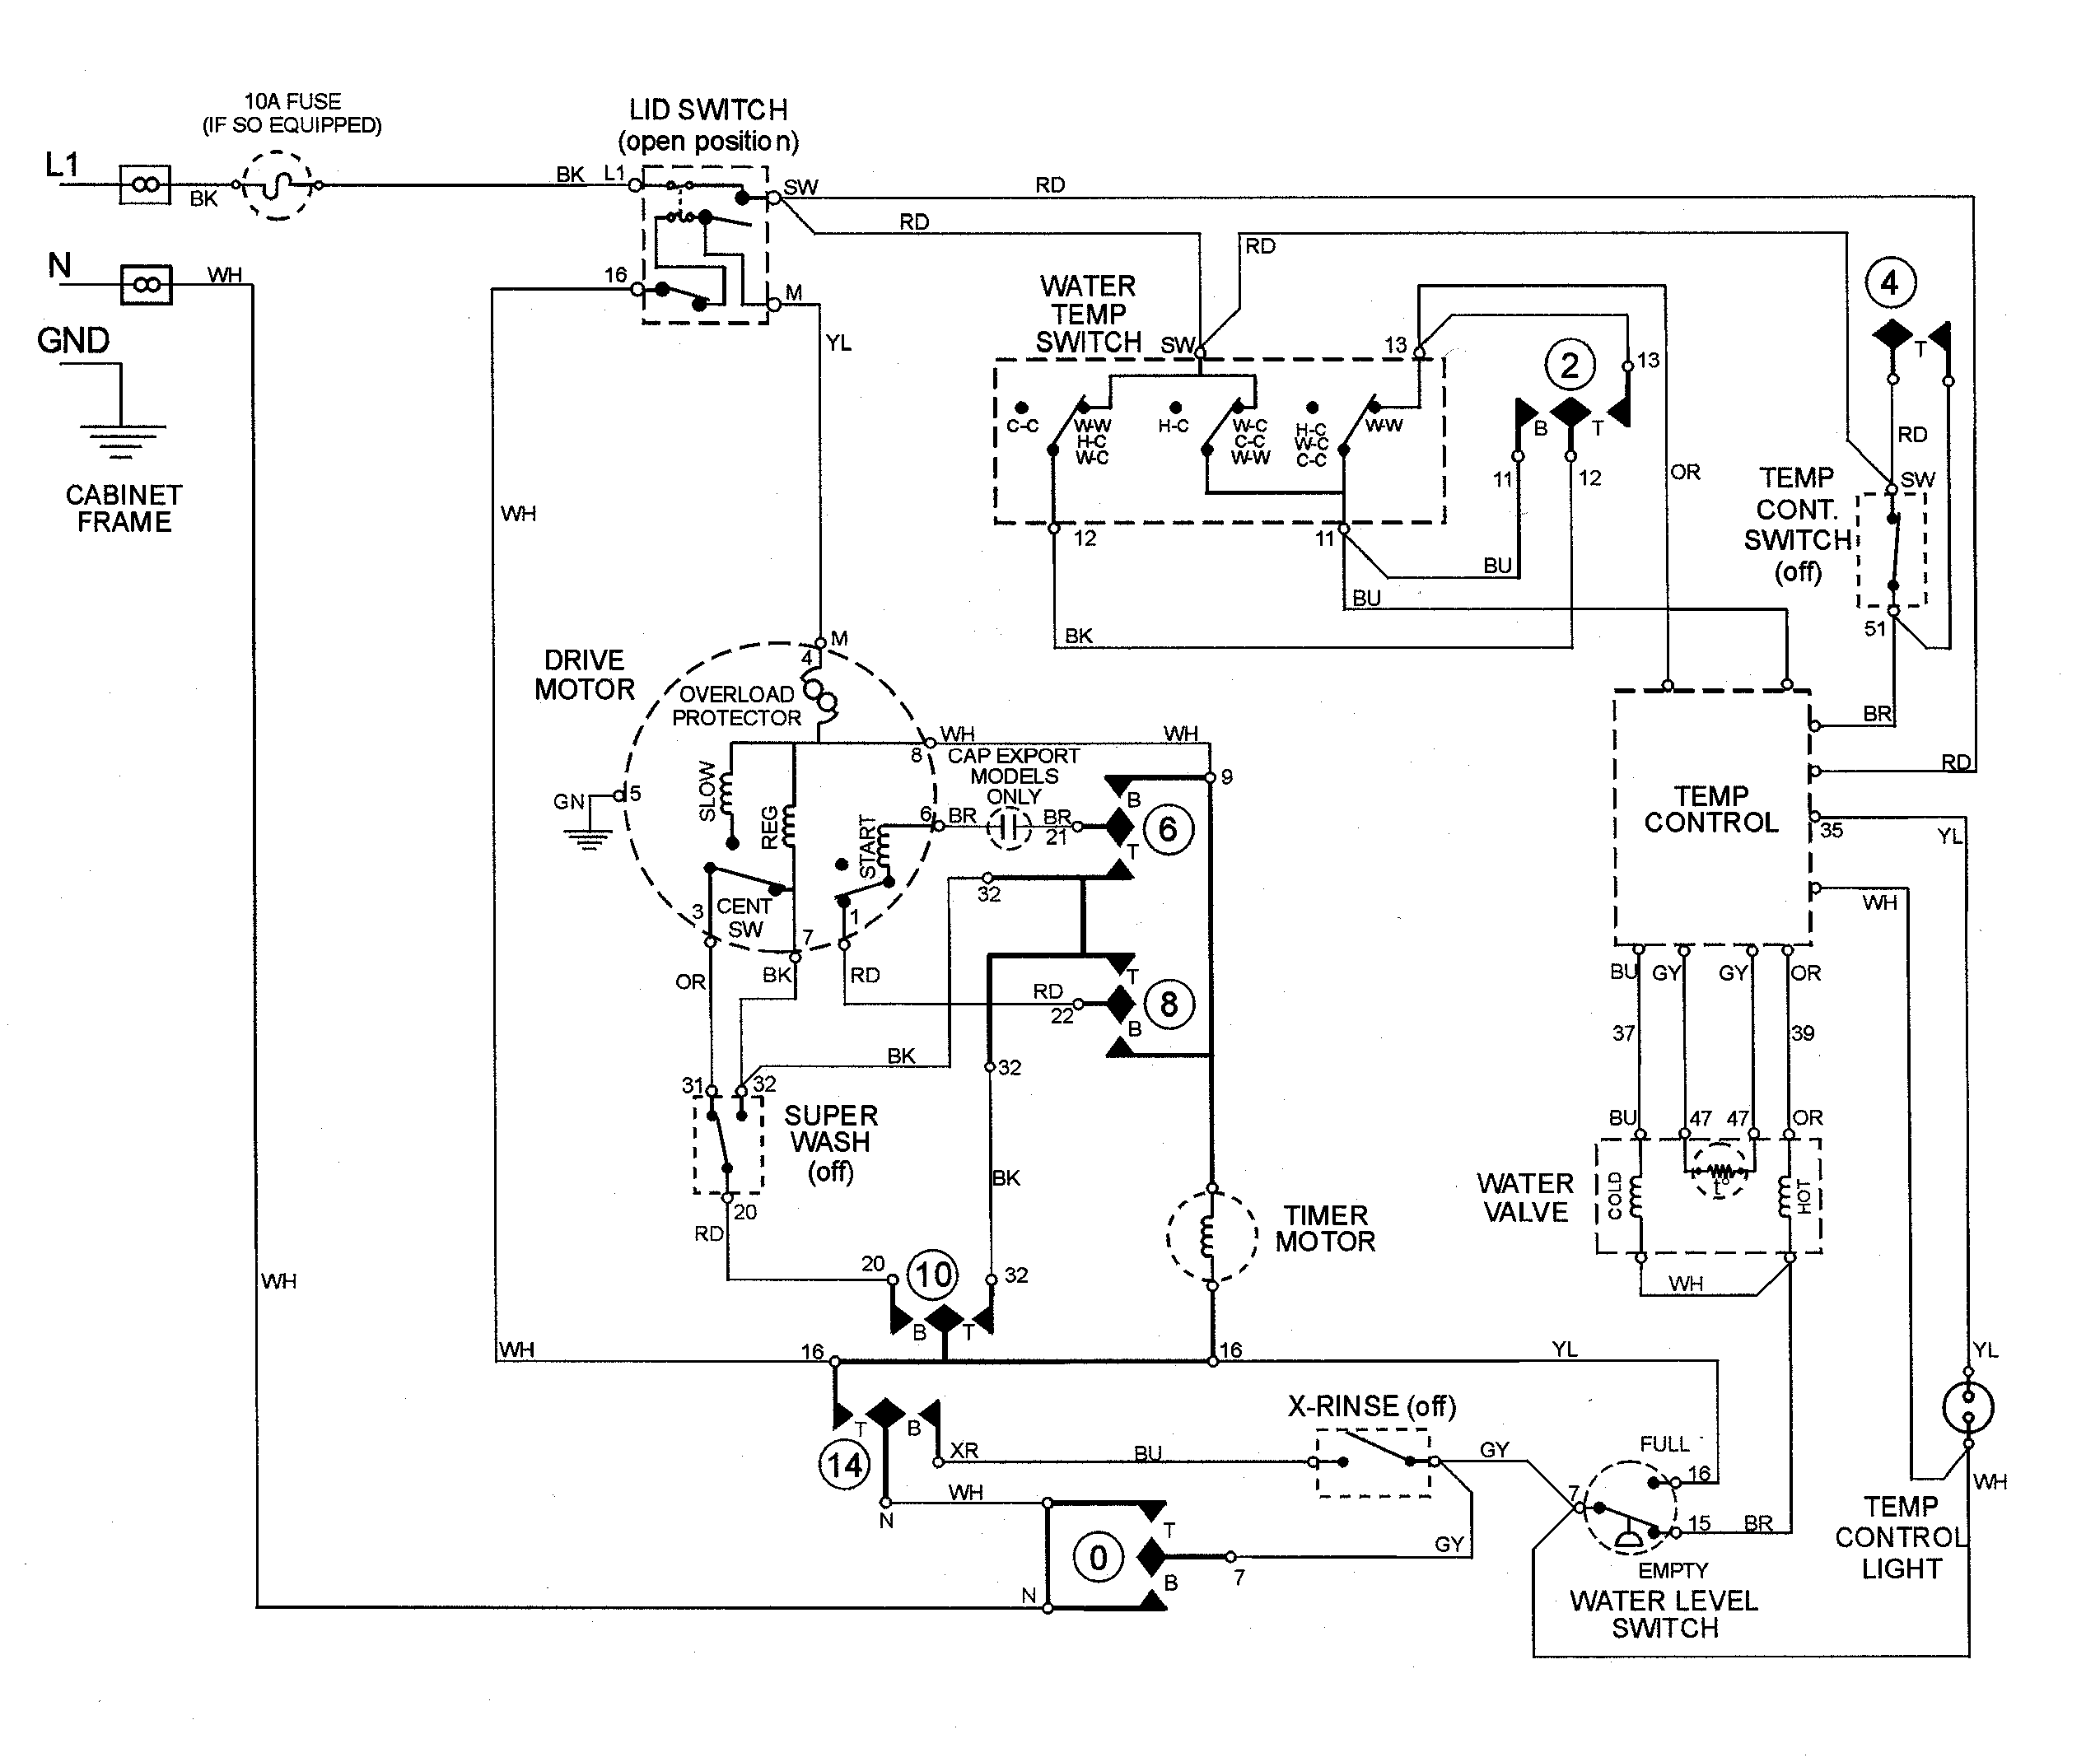 Ge Washing Machine Motor Wiring Diagram, Ge, Wiring Diagram ... on